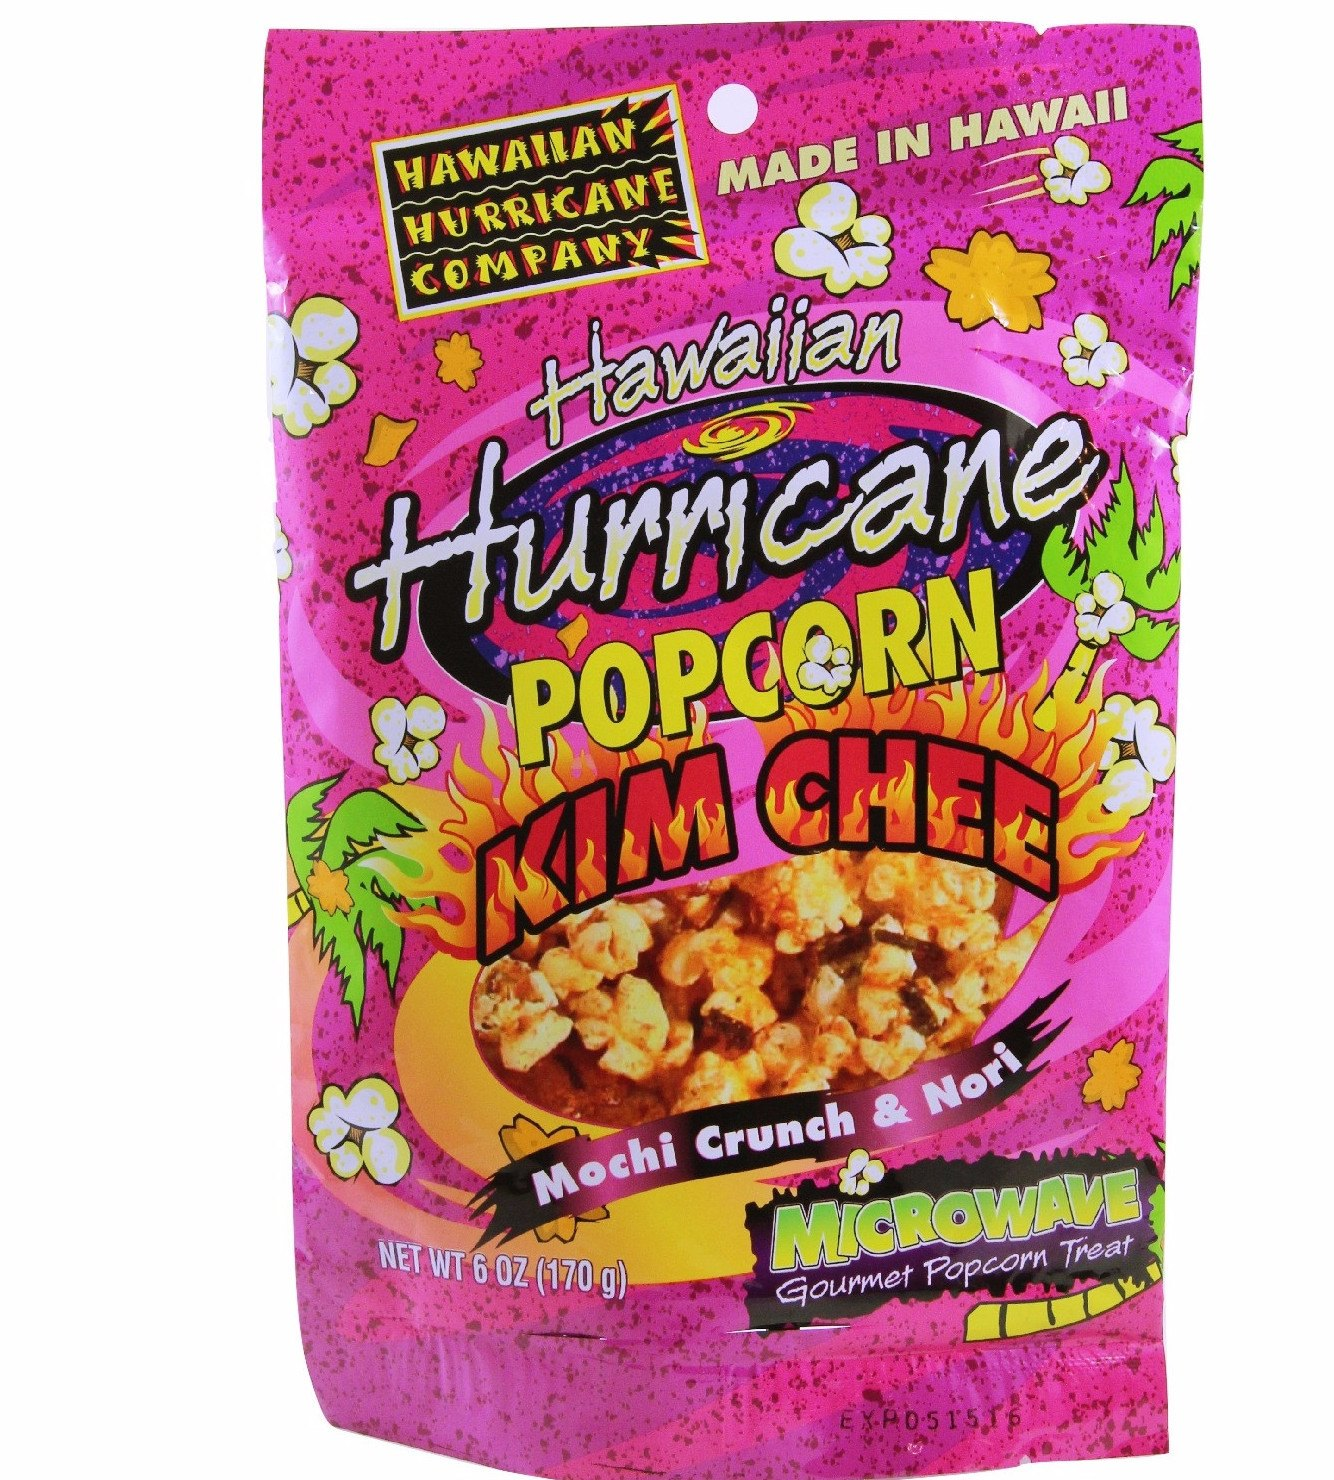 Kim Chee Hurricane - Microwave Single